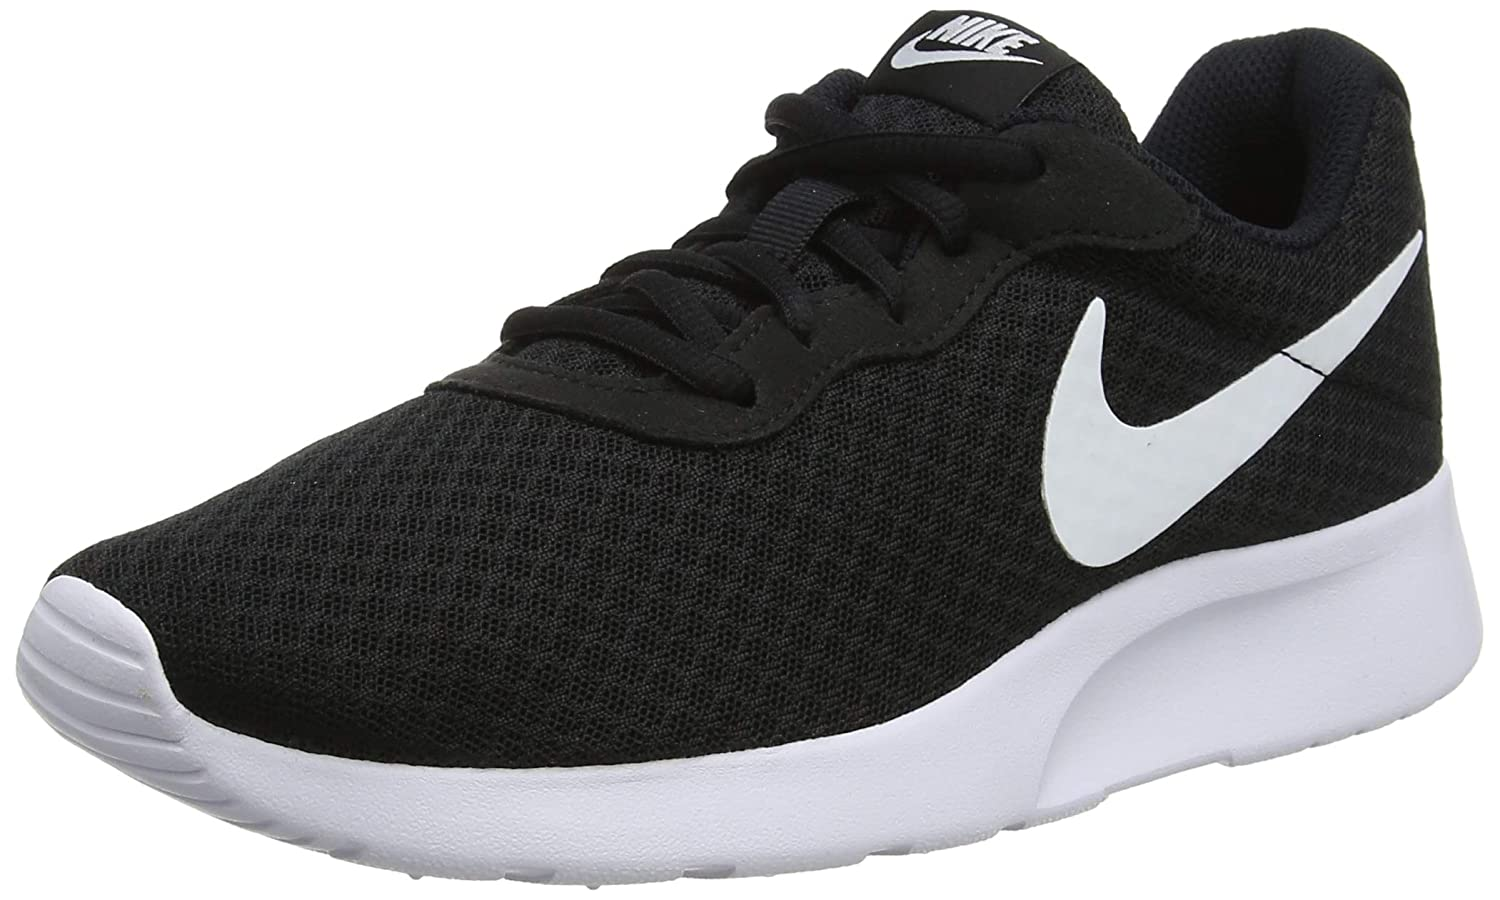 24d914fc6f6d0 Amazon.com | NIKE Women's Tanjun Running Shoes | Fashion Sneakers